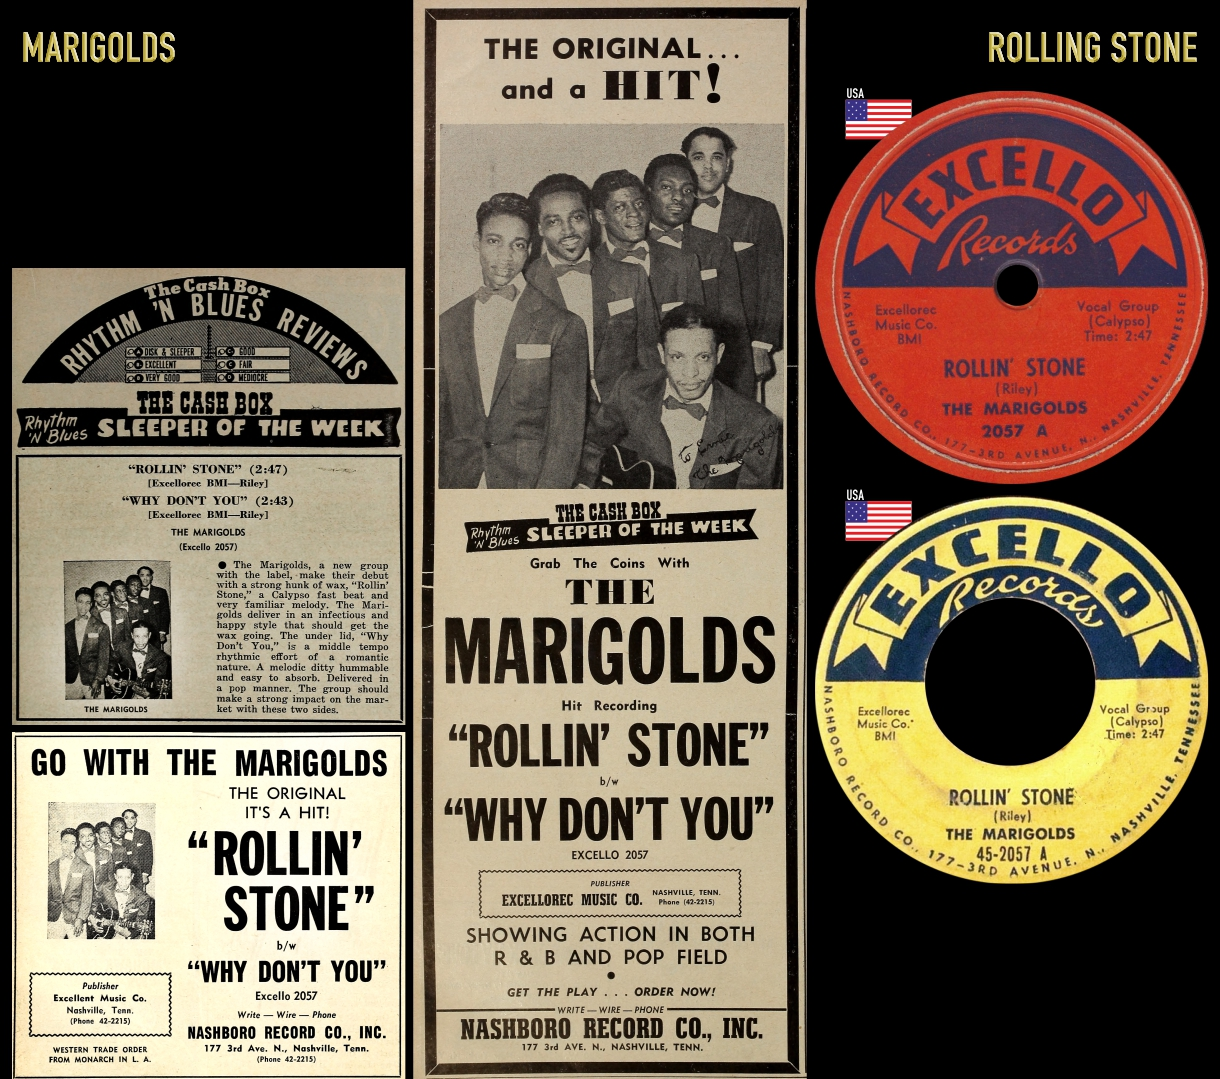 550604_Marigolds_Rolling Stone